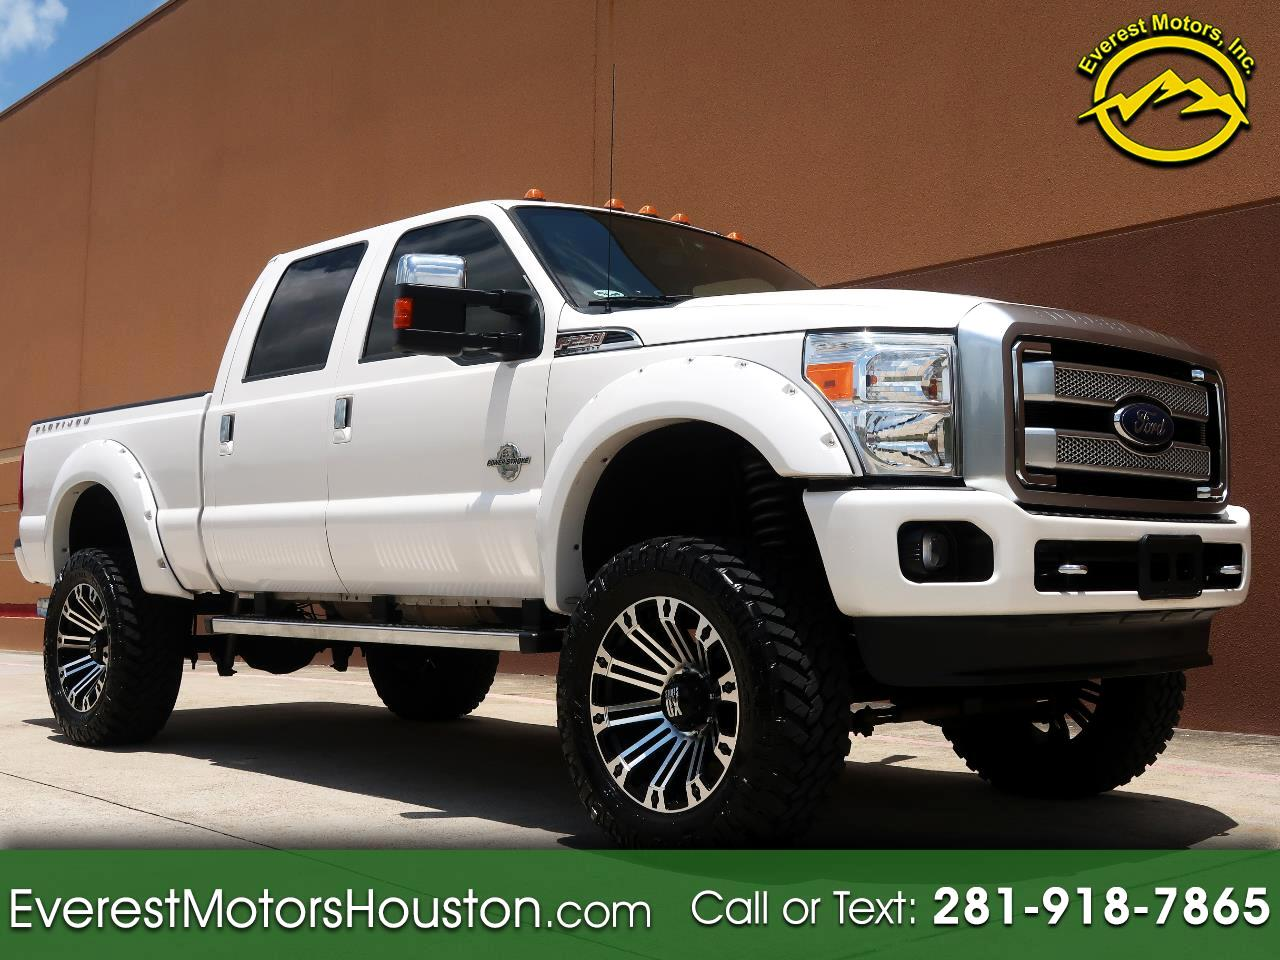 "2015 Ford F-250 SD PLATINUM Crew Cab SWB 4X4 LOADED LOW MILES 6"" Lift"